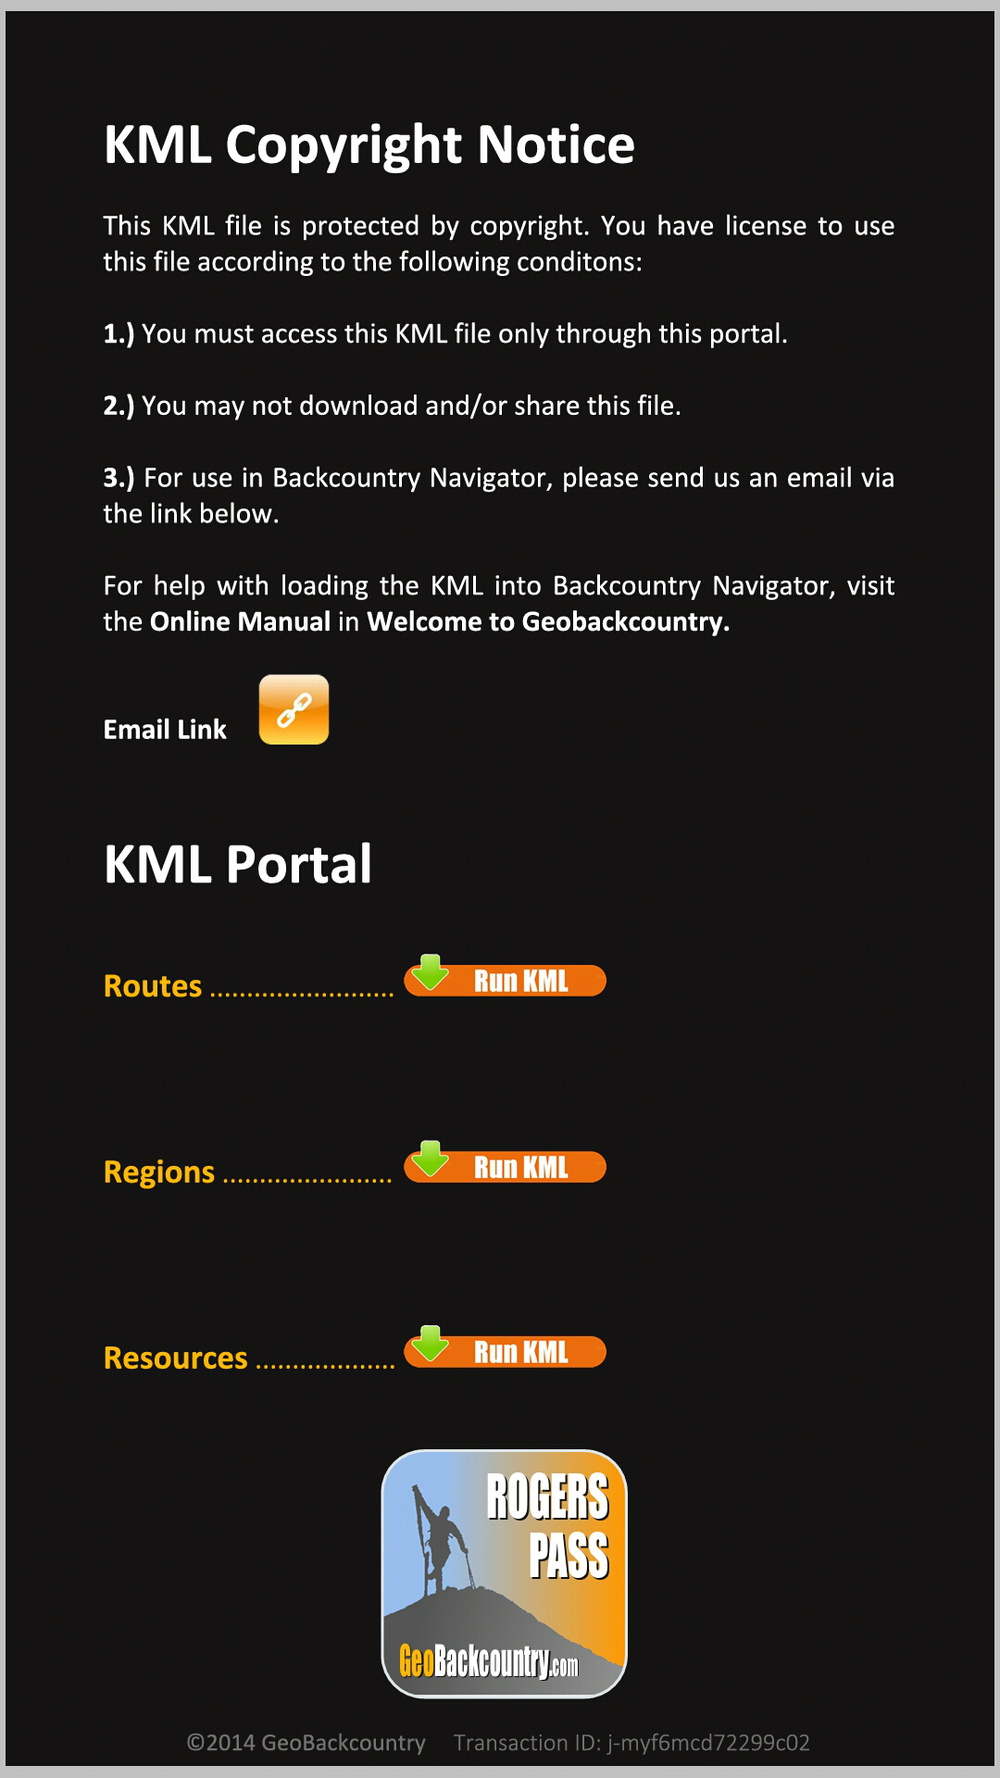 There are three separate KML files available in the KML Portal: 1. Routes 2. Regions 3. Resources Click the 'Run KML' Button to open the one you want. For this example, we are choosing 'Routes.' This KML contains all 100 routes of GeoBackcountry Rogers Pass. Sweet!